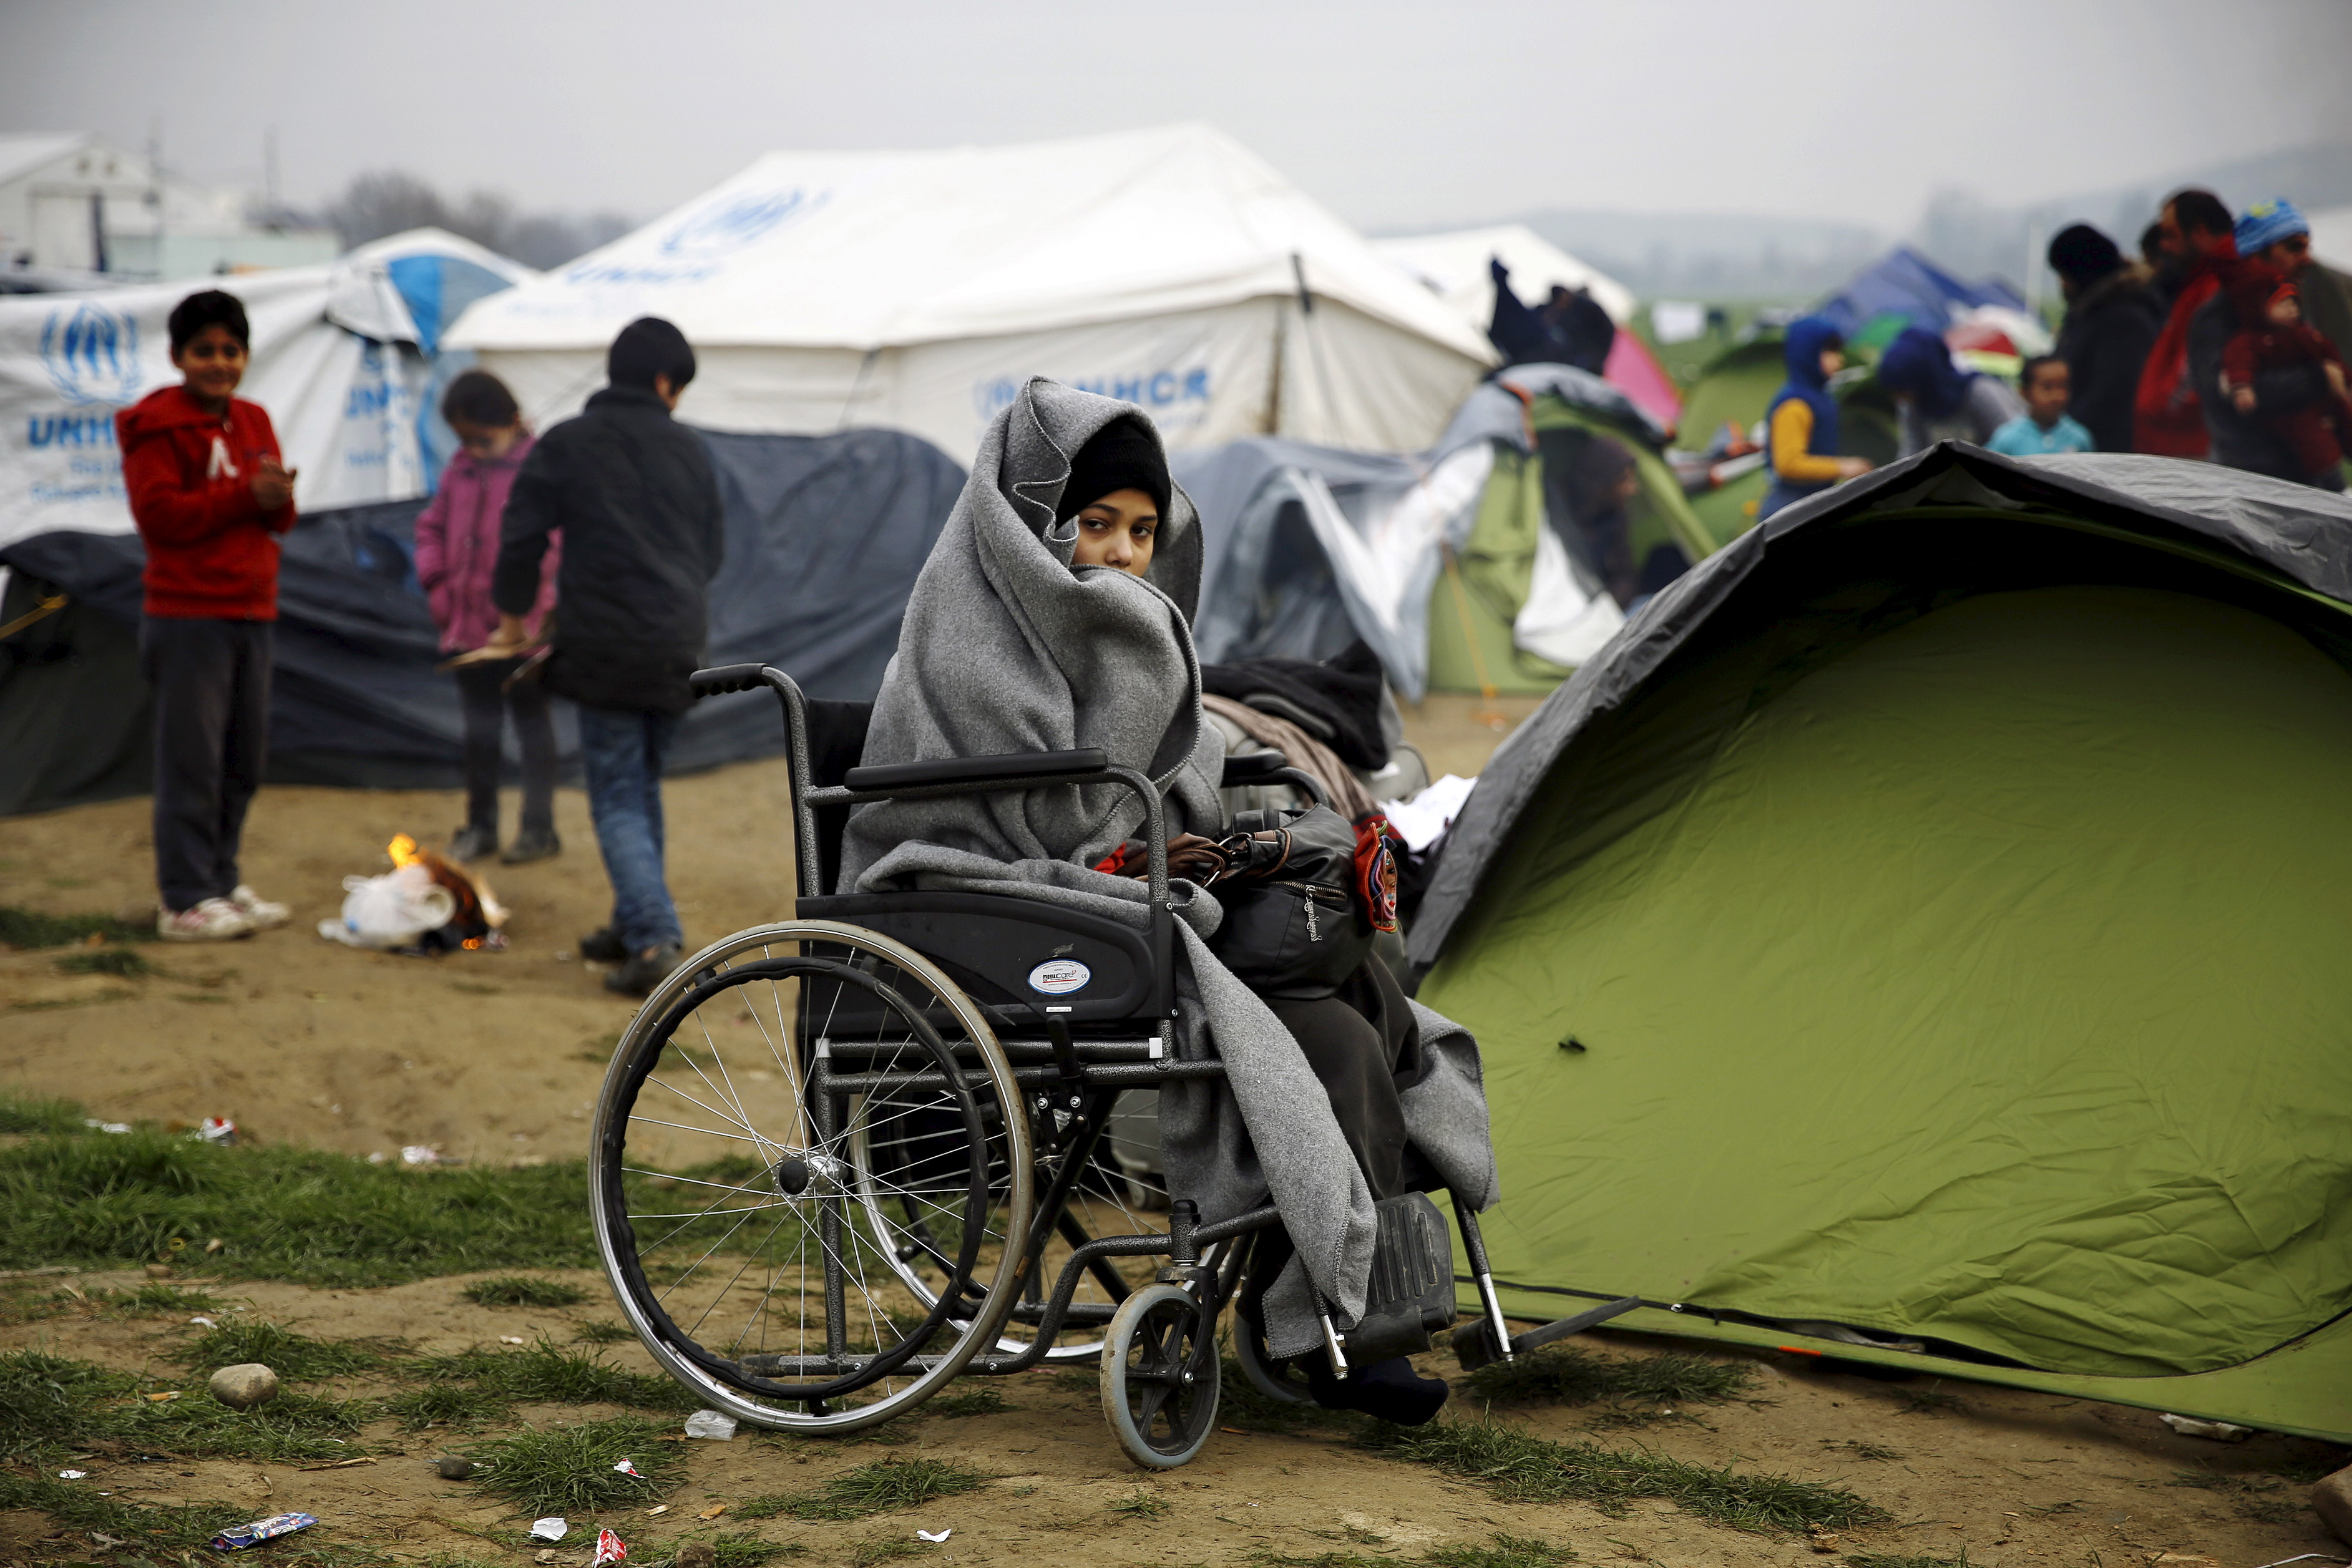 A temporarily stranded Syrian refugee is seen on a wheelchair at a makeshift camp near the Greek village of Idomeni, next to the border with Macedonia, on Feb. 24, 2016